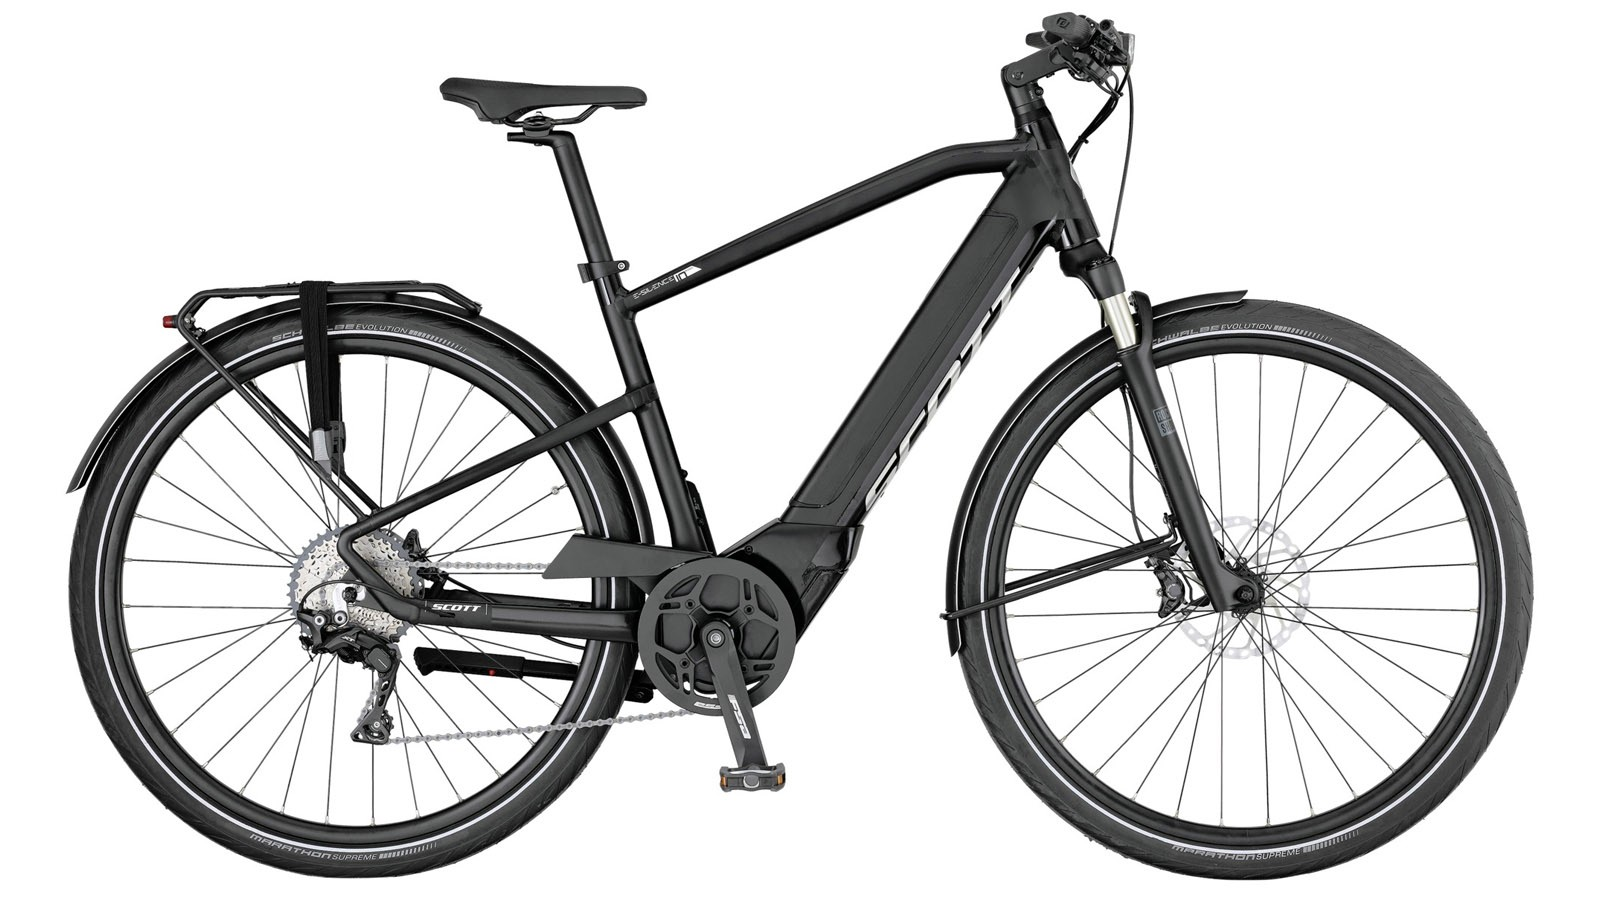 The E-Silence 10 gets a murdered out black paint job and a standard chain-driven Shimano drivetrain